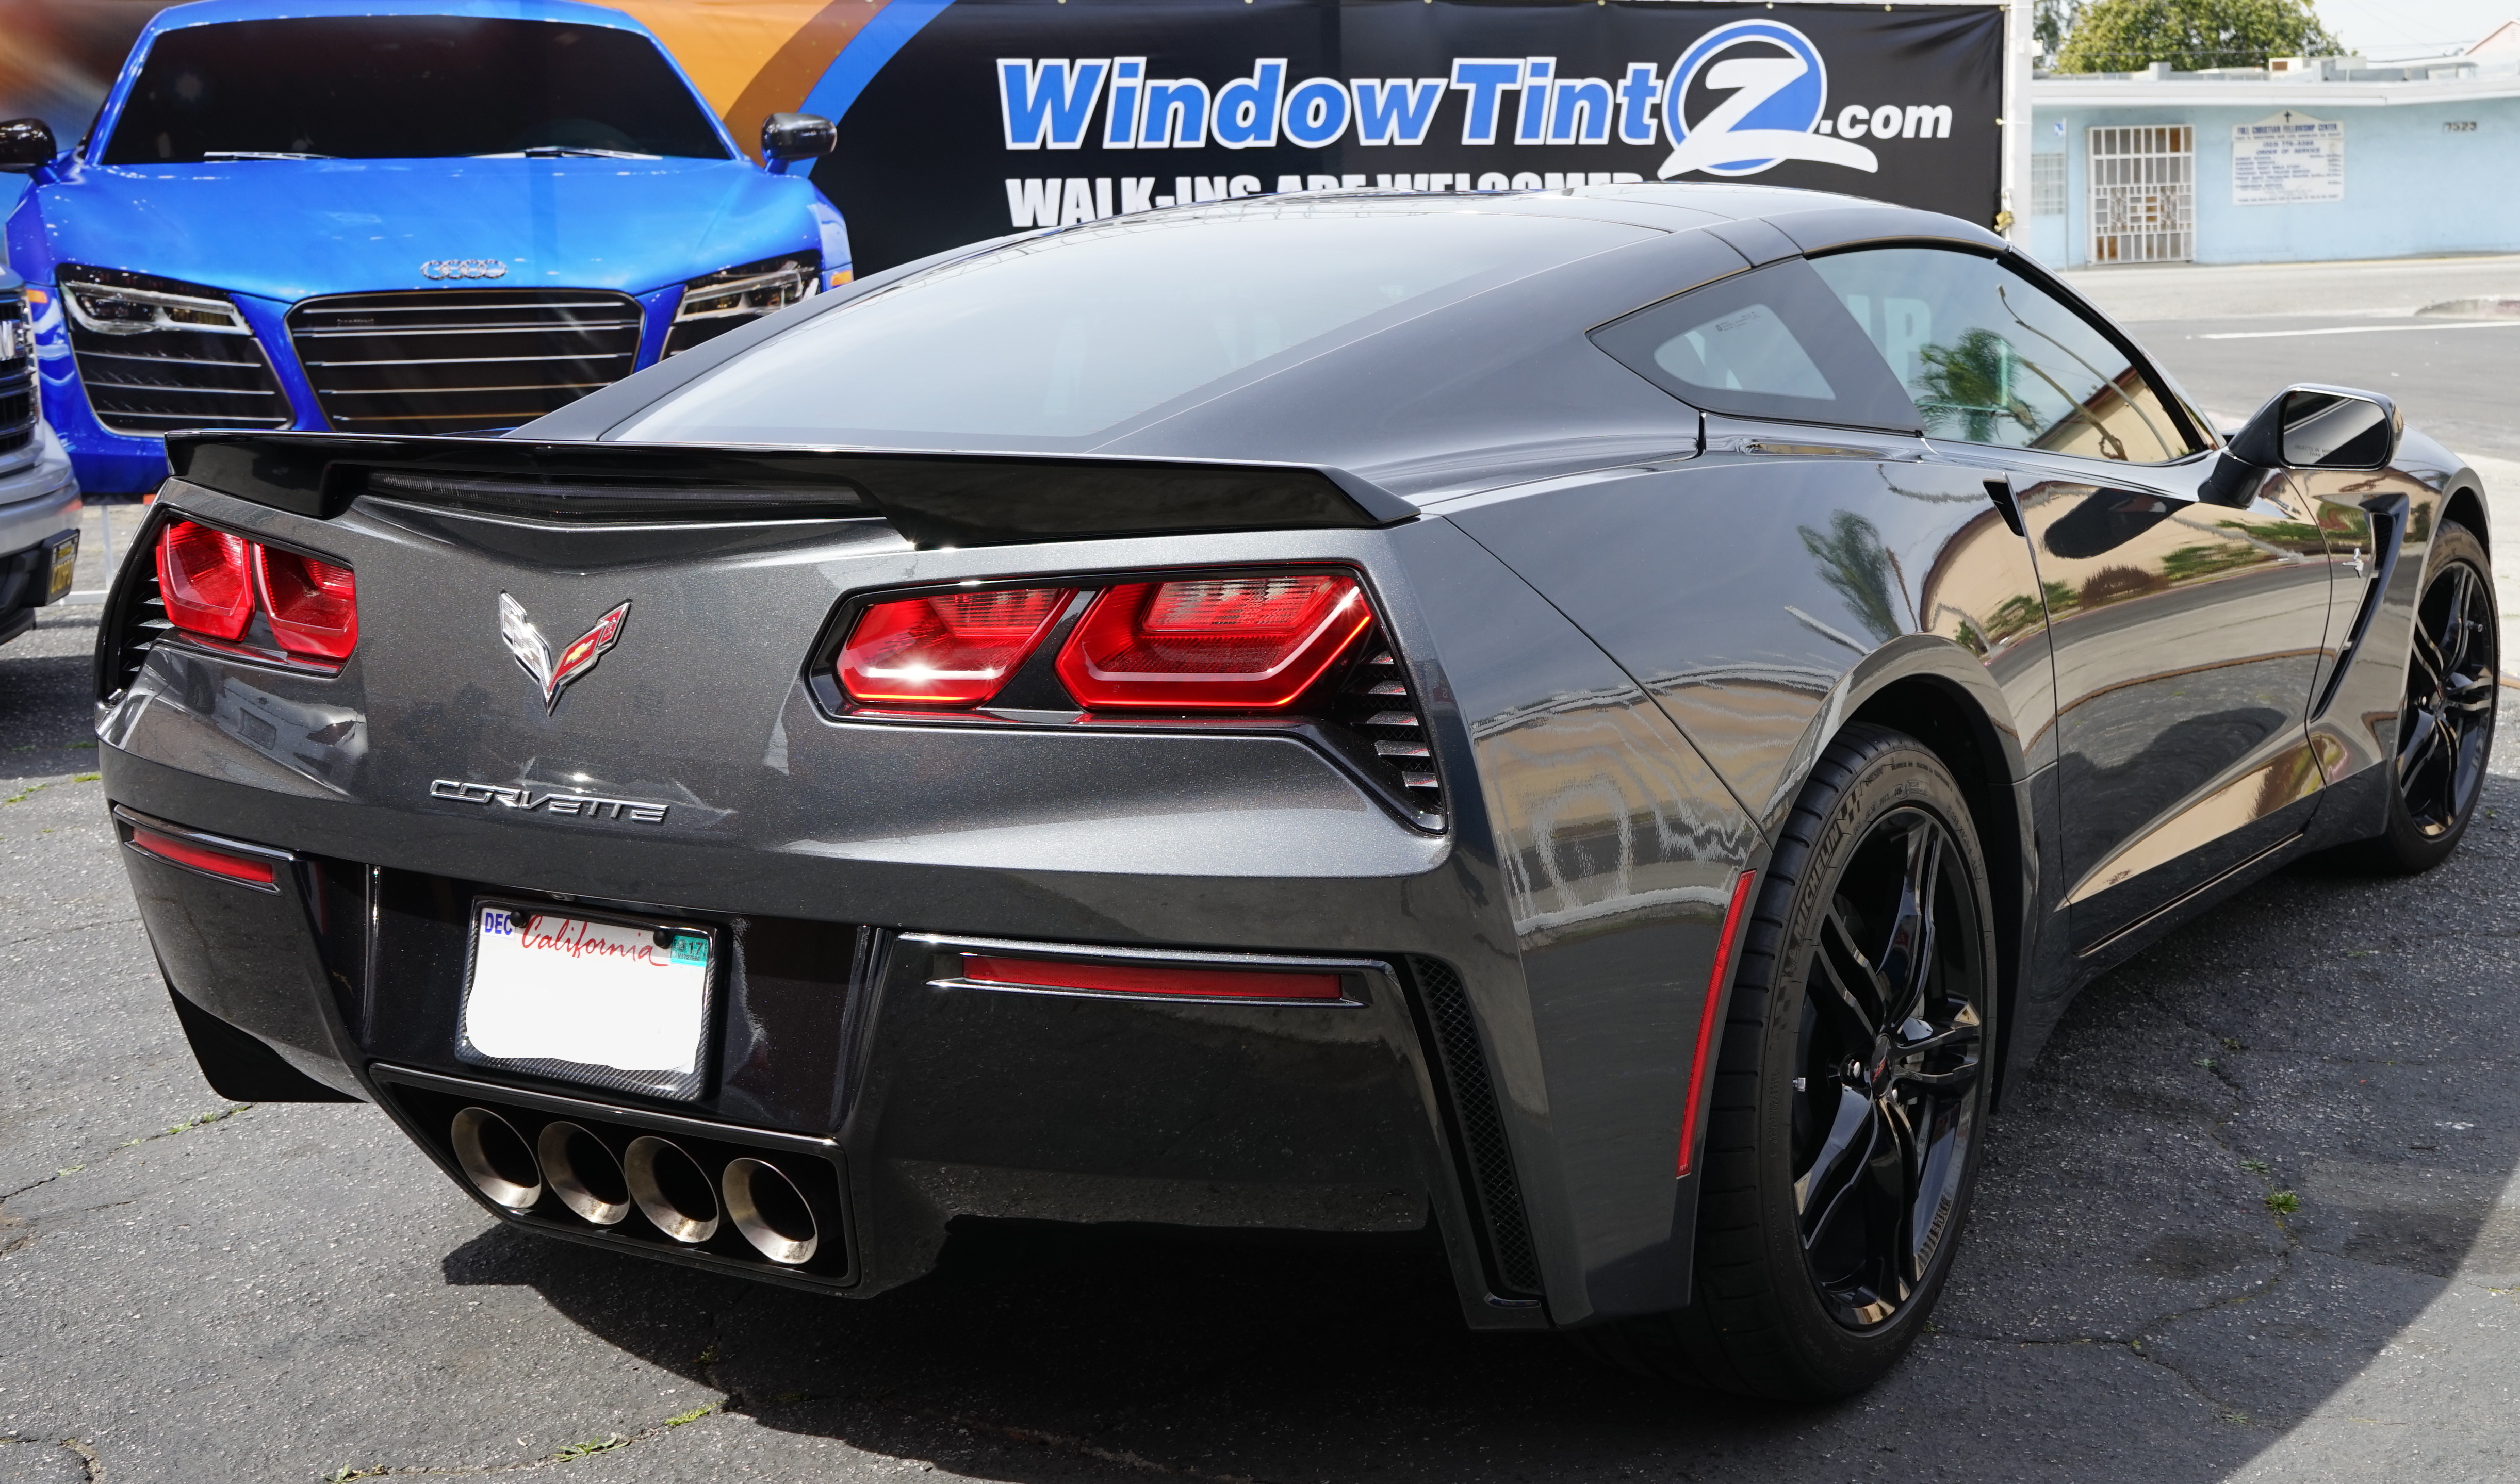 Corvette Window Tinting Pictures